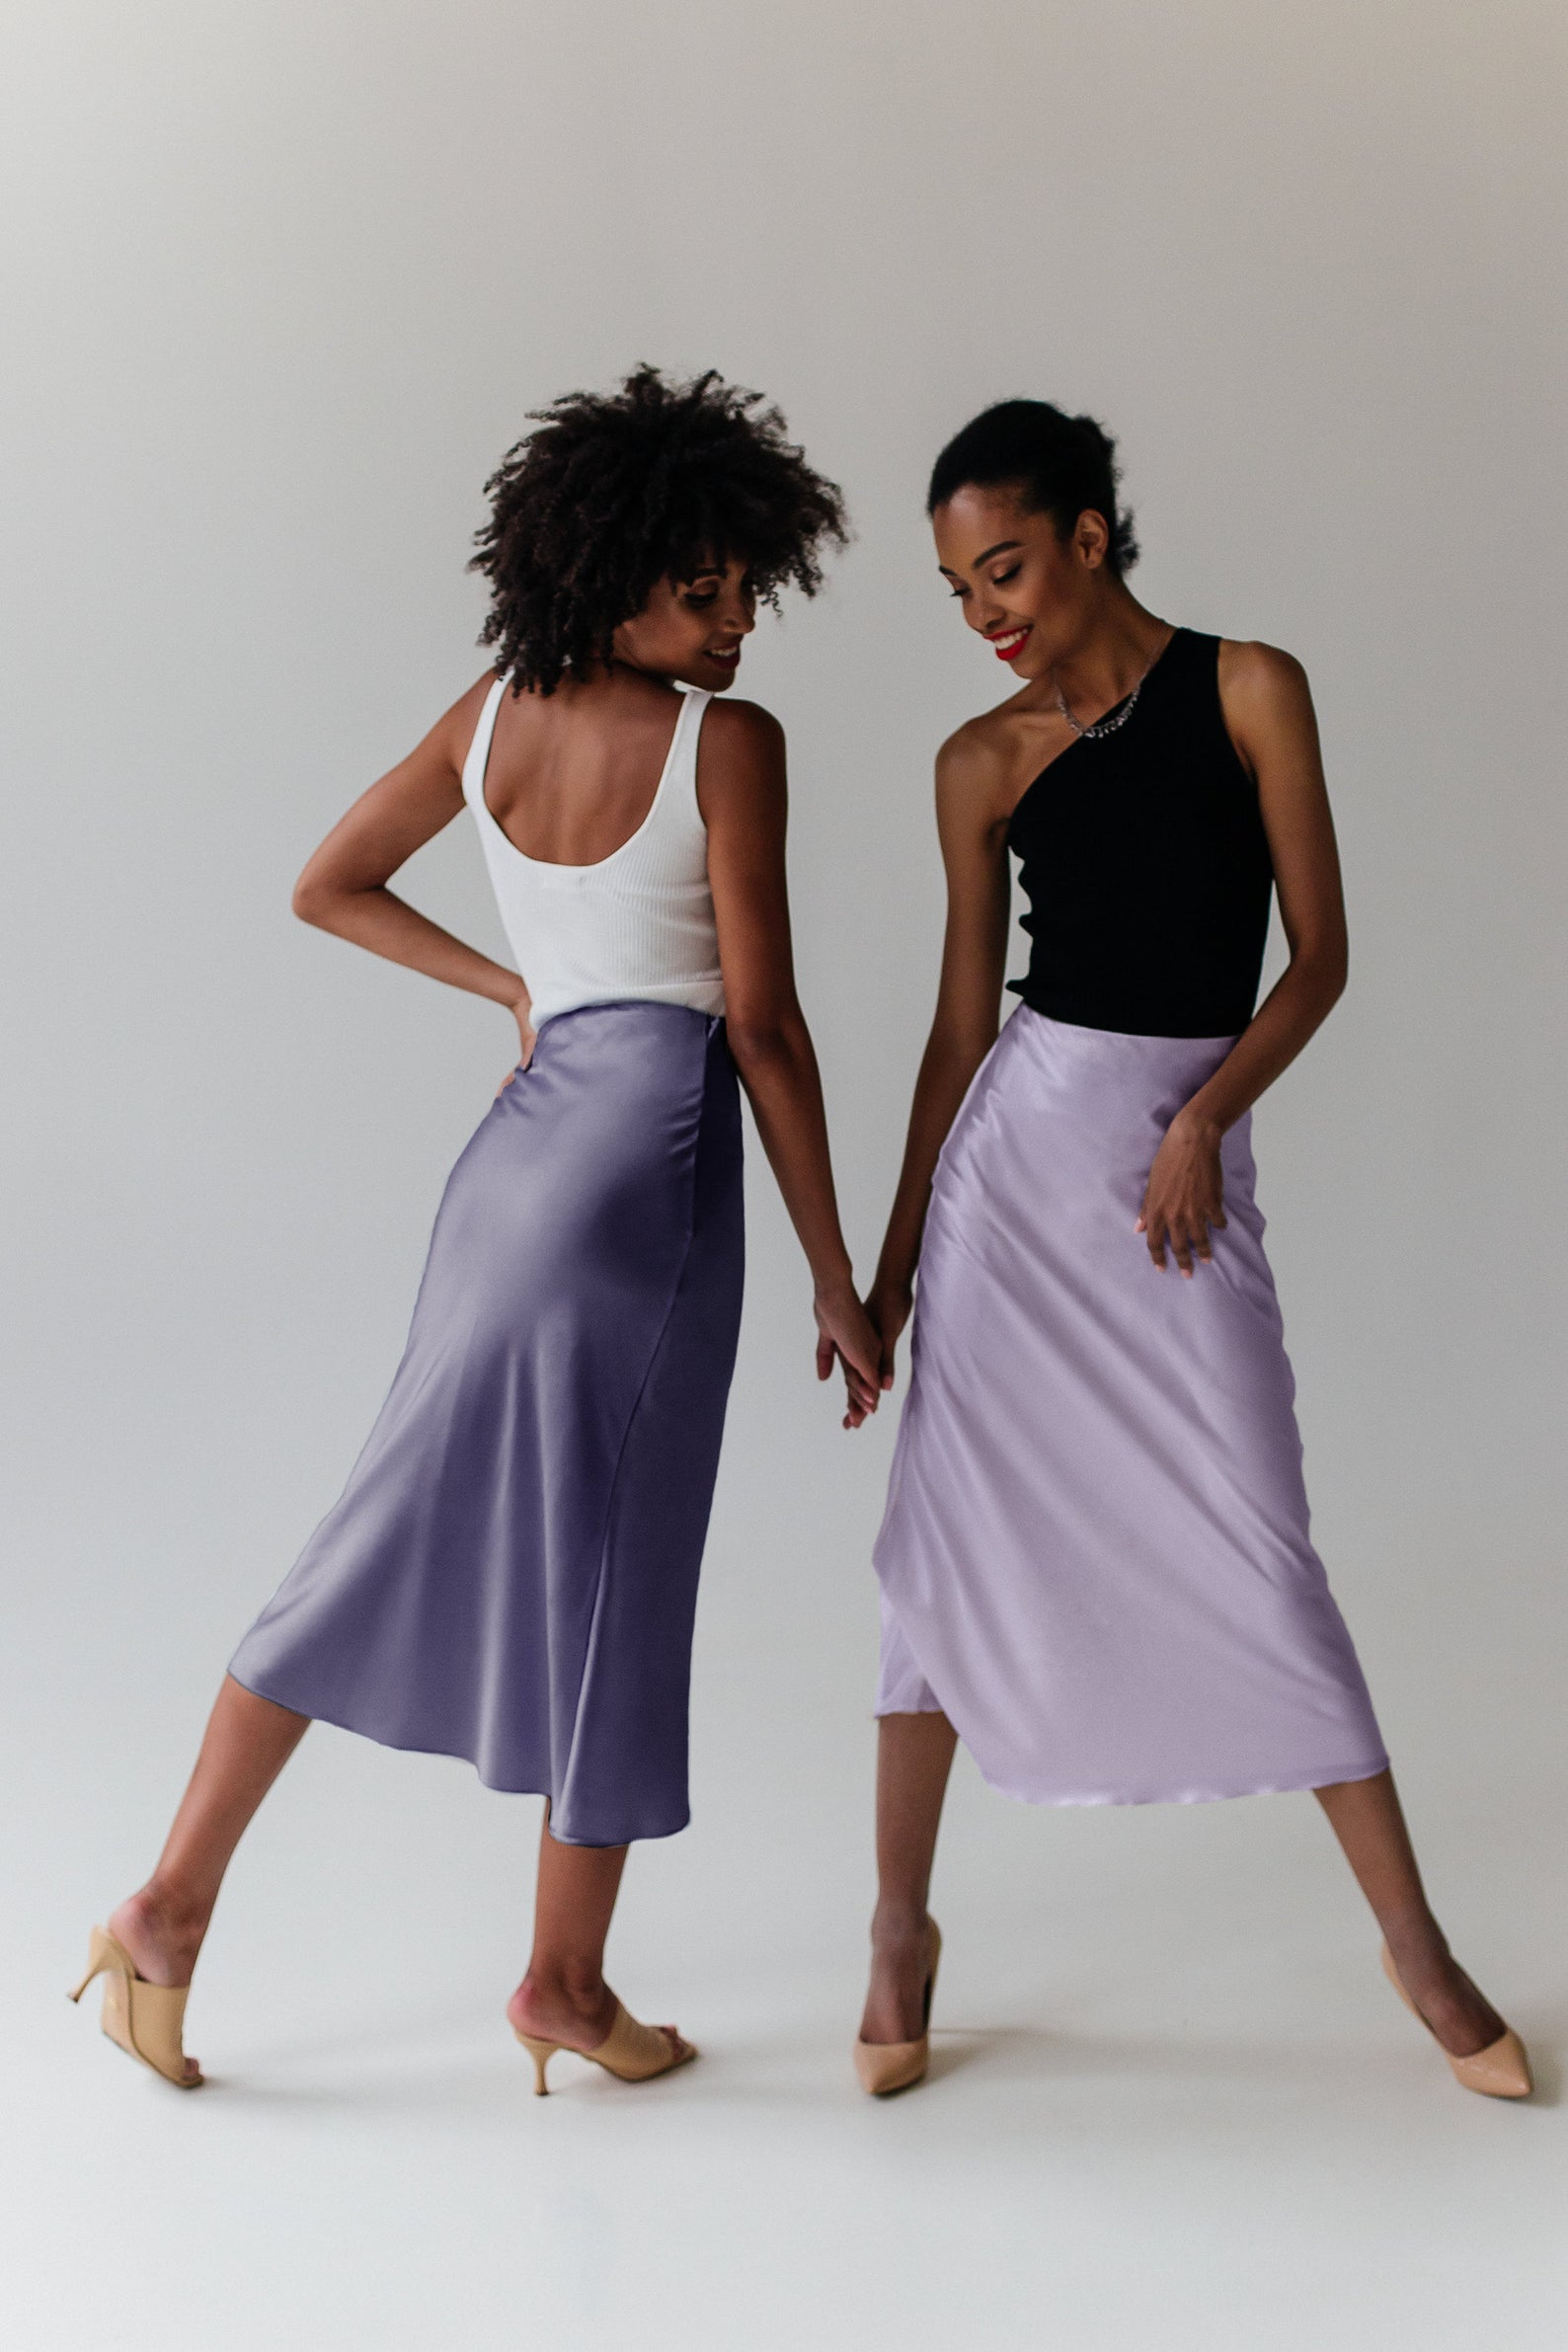 Two women holding hands. Woman on the left wearing dark lilac slip skirt and white top. Woman on the right wearing light lilac skirt and black top.